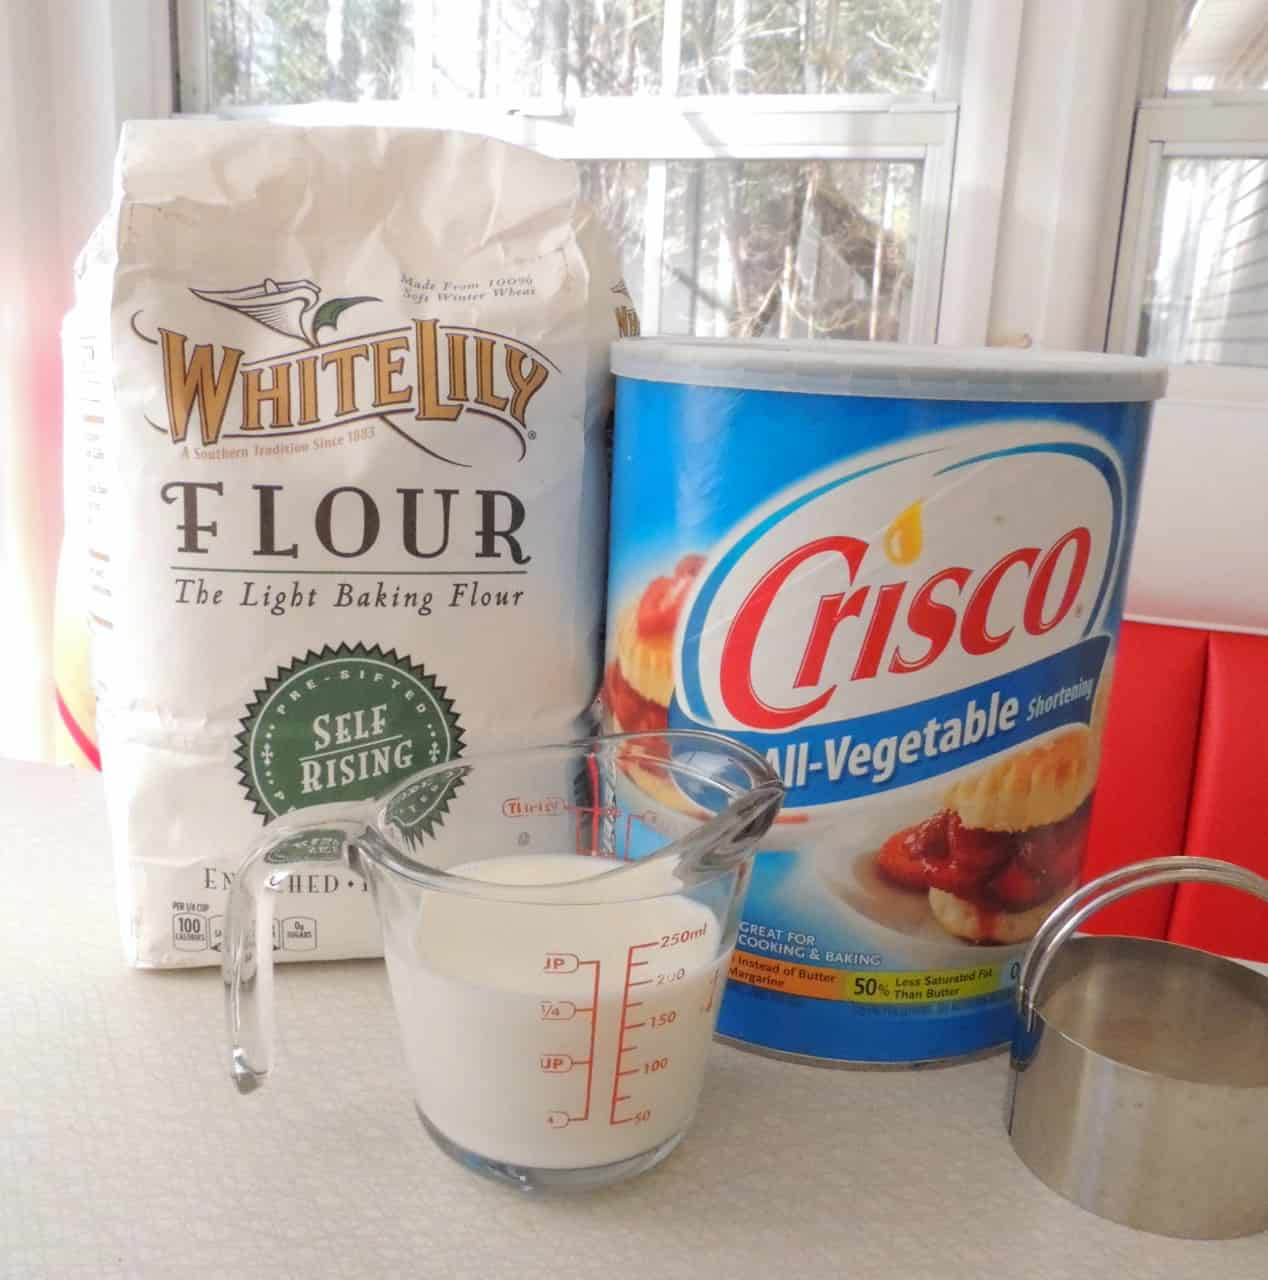 White Lily Self Rising Flour Biscuit Recipe